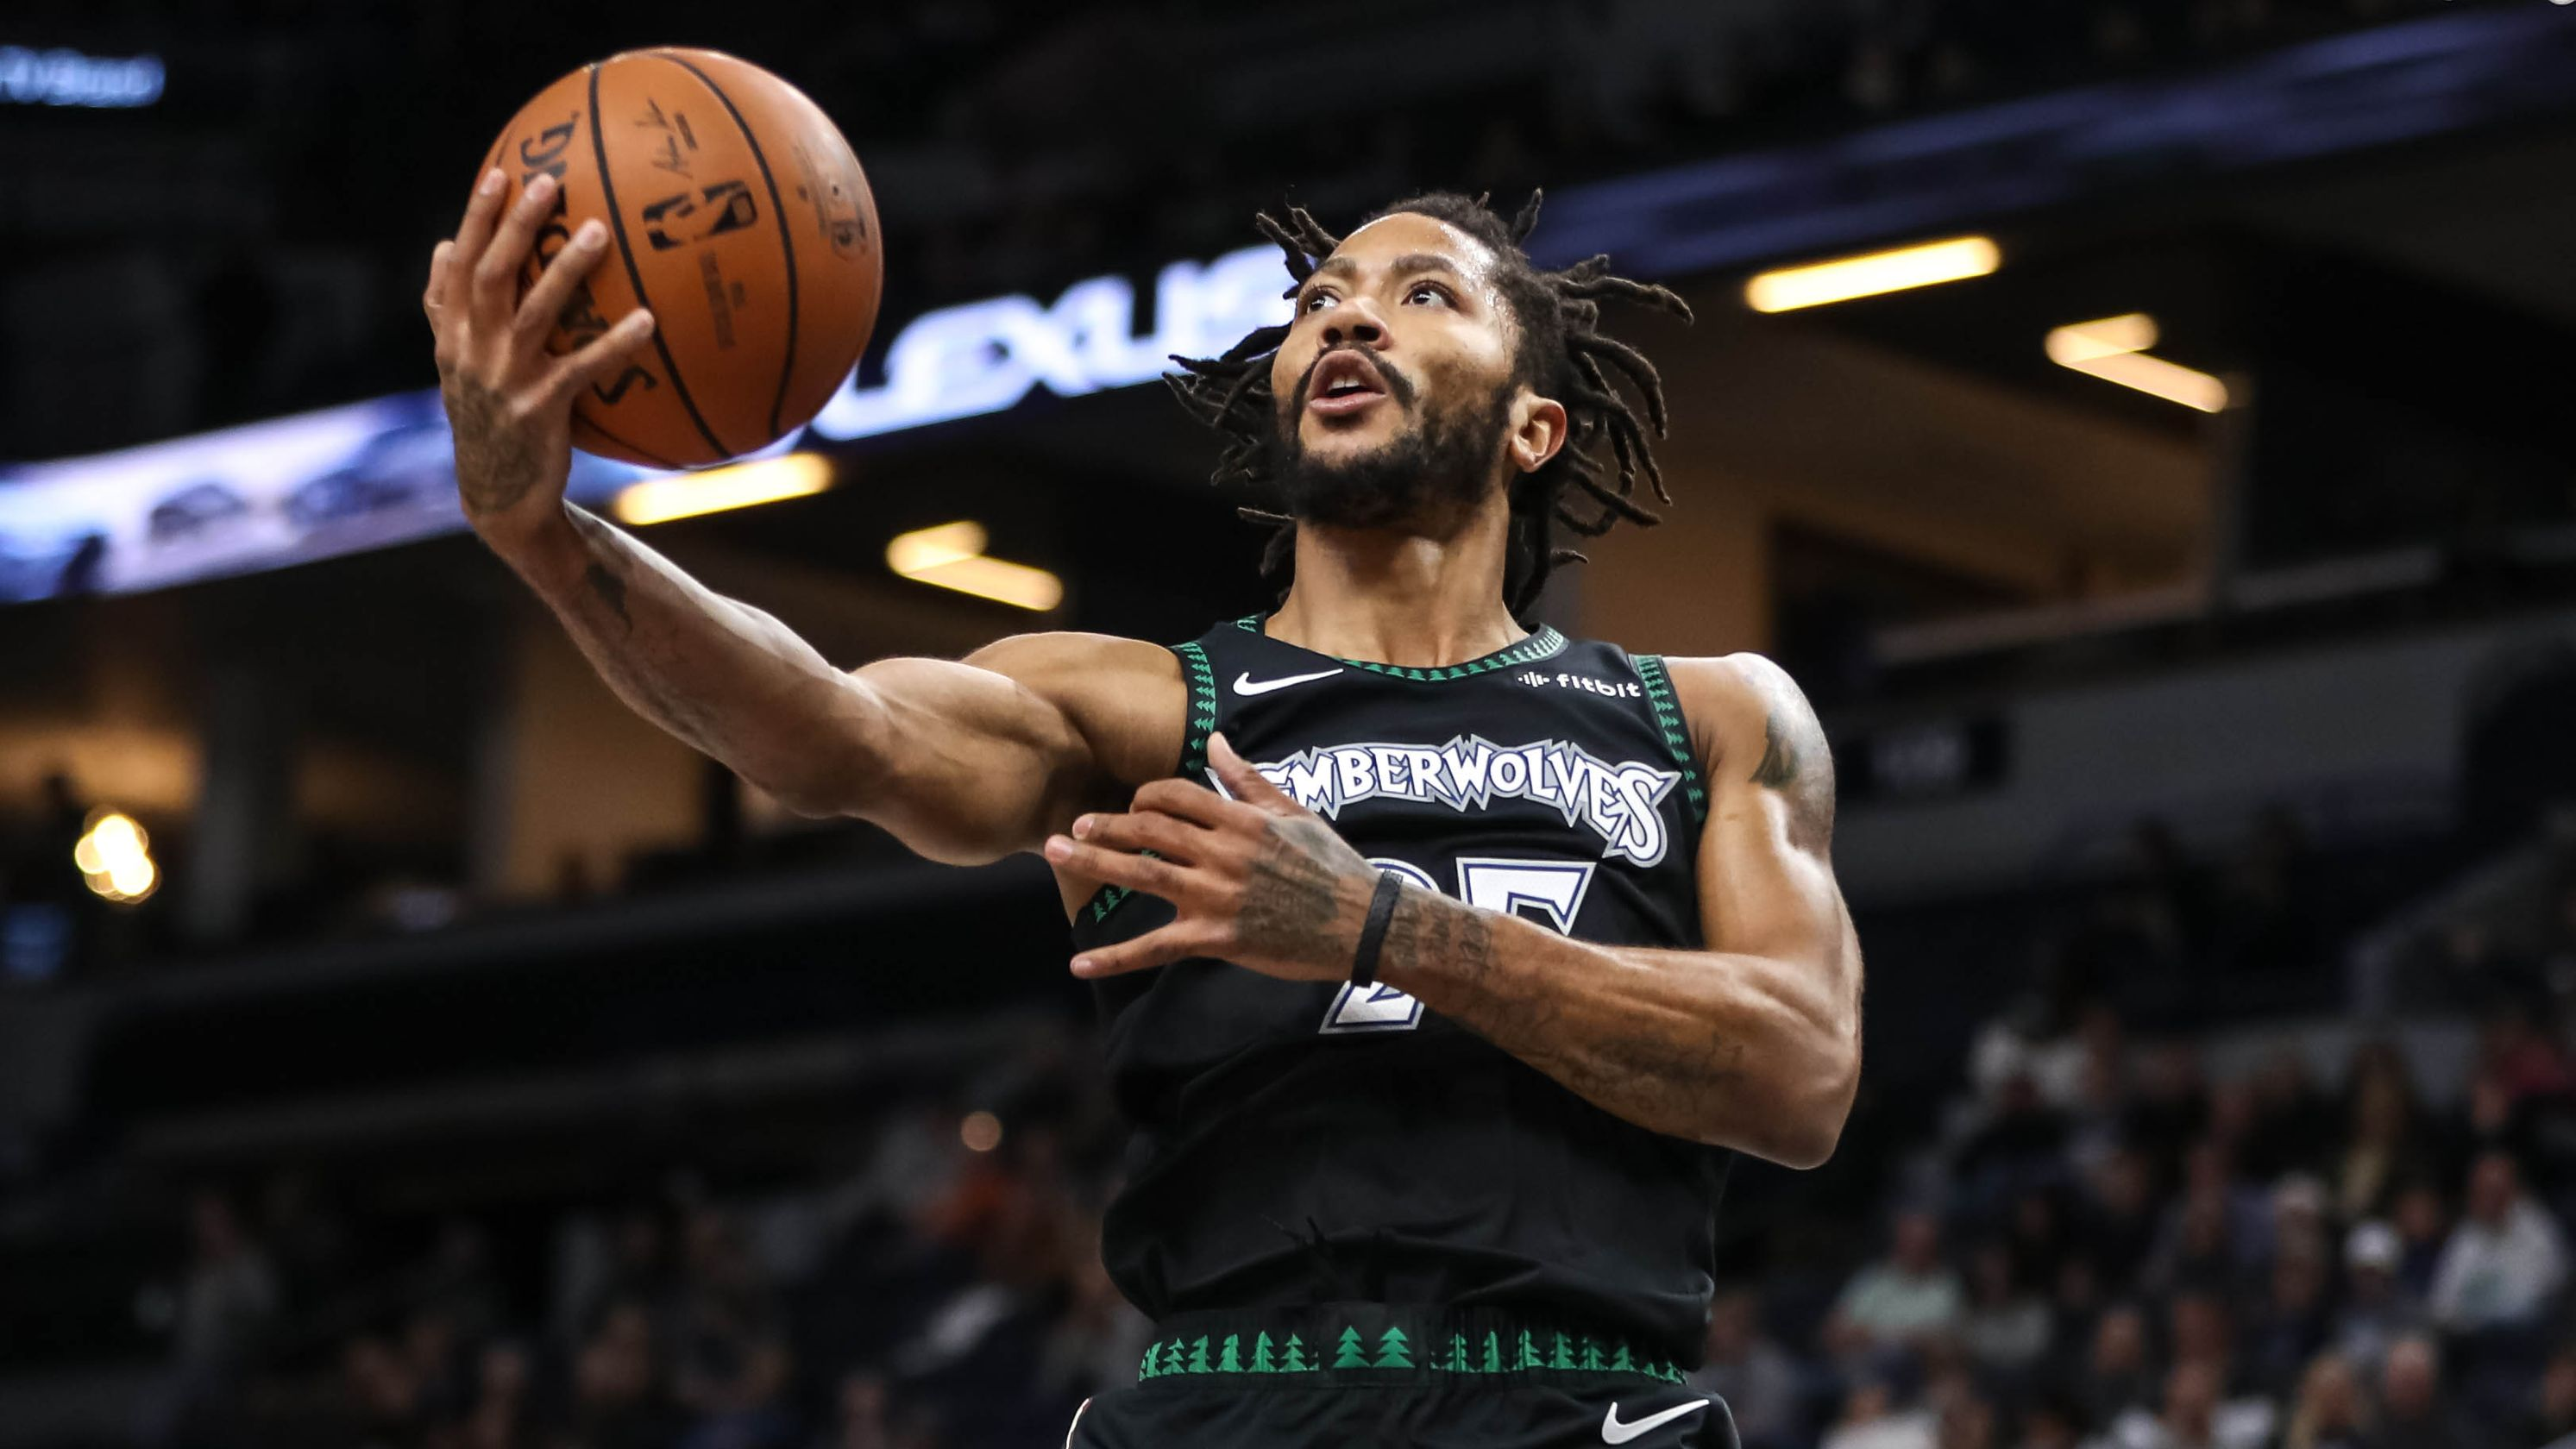 reputable site 929f2 cbb74 Ex-MVP Derrick Rose delights NBA with career-high 50 points ...